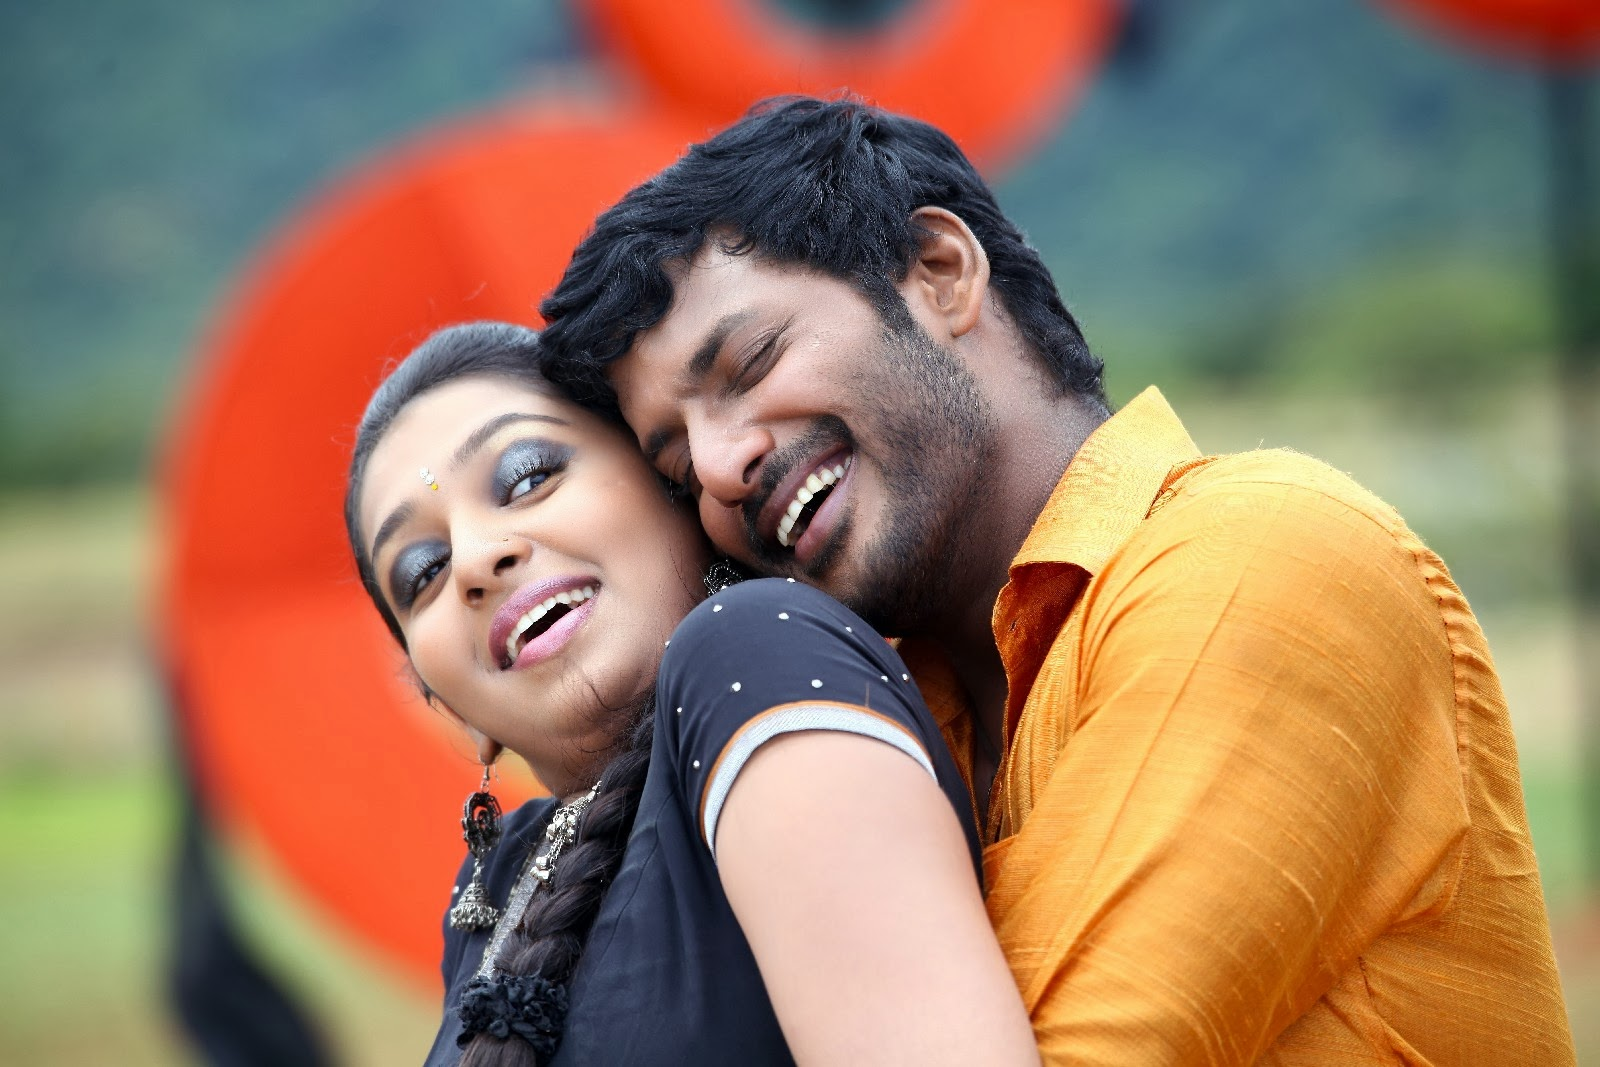 Palnadu Telugu movie review, palnadu review, Palnadu movie rating, Vishal Palnadu movie review.